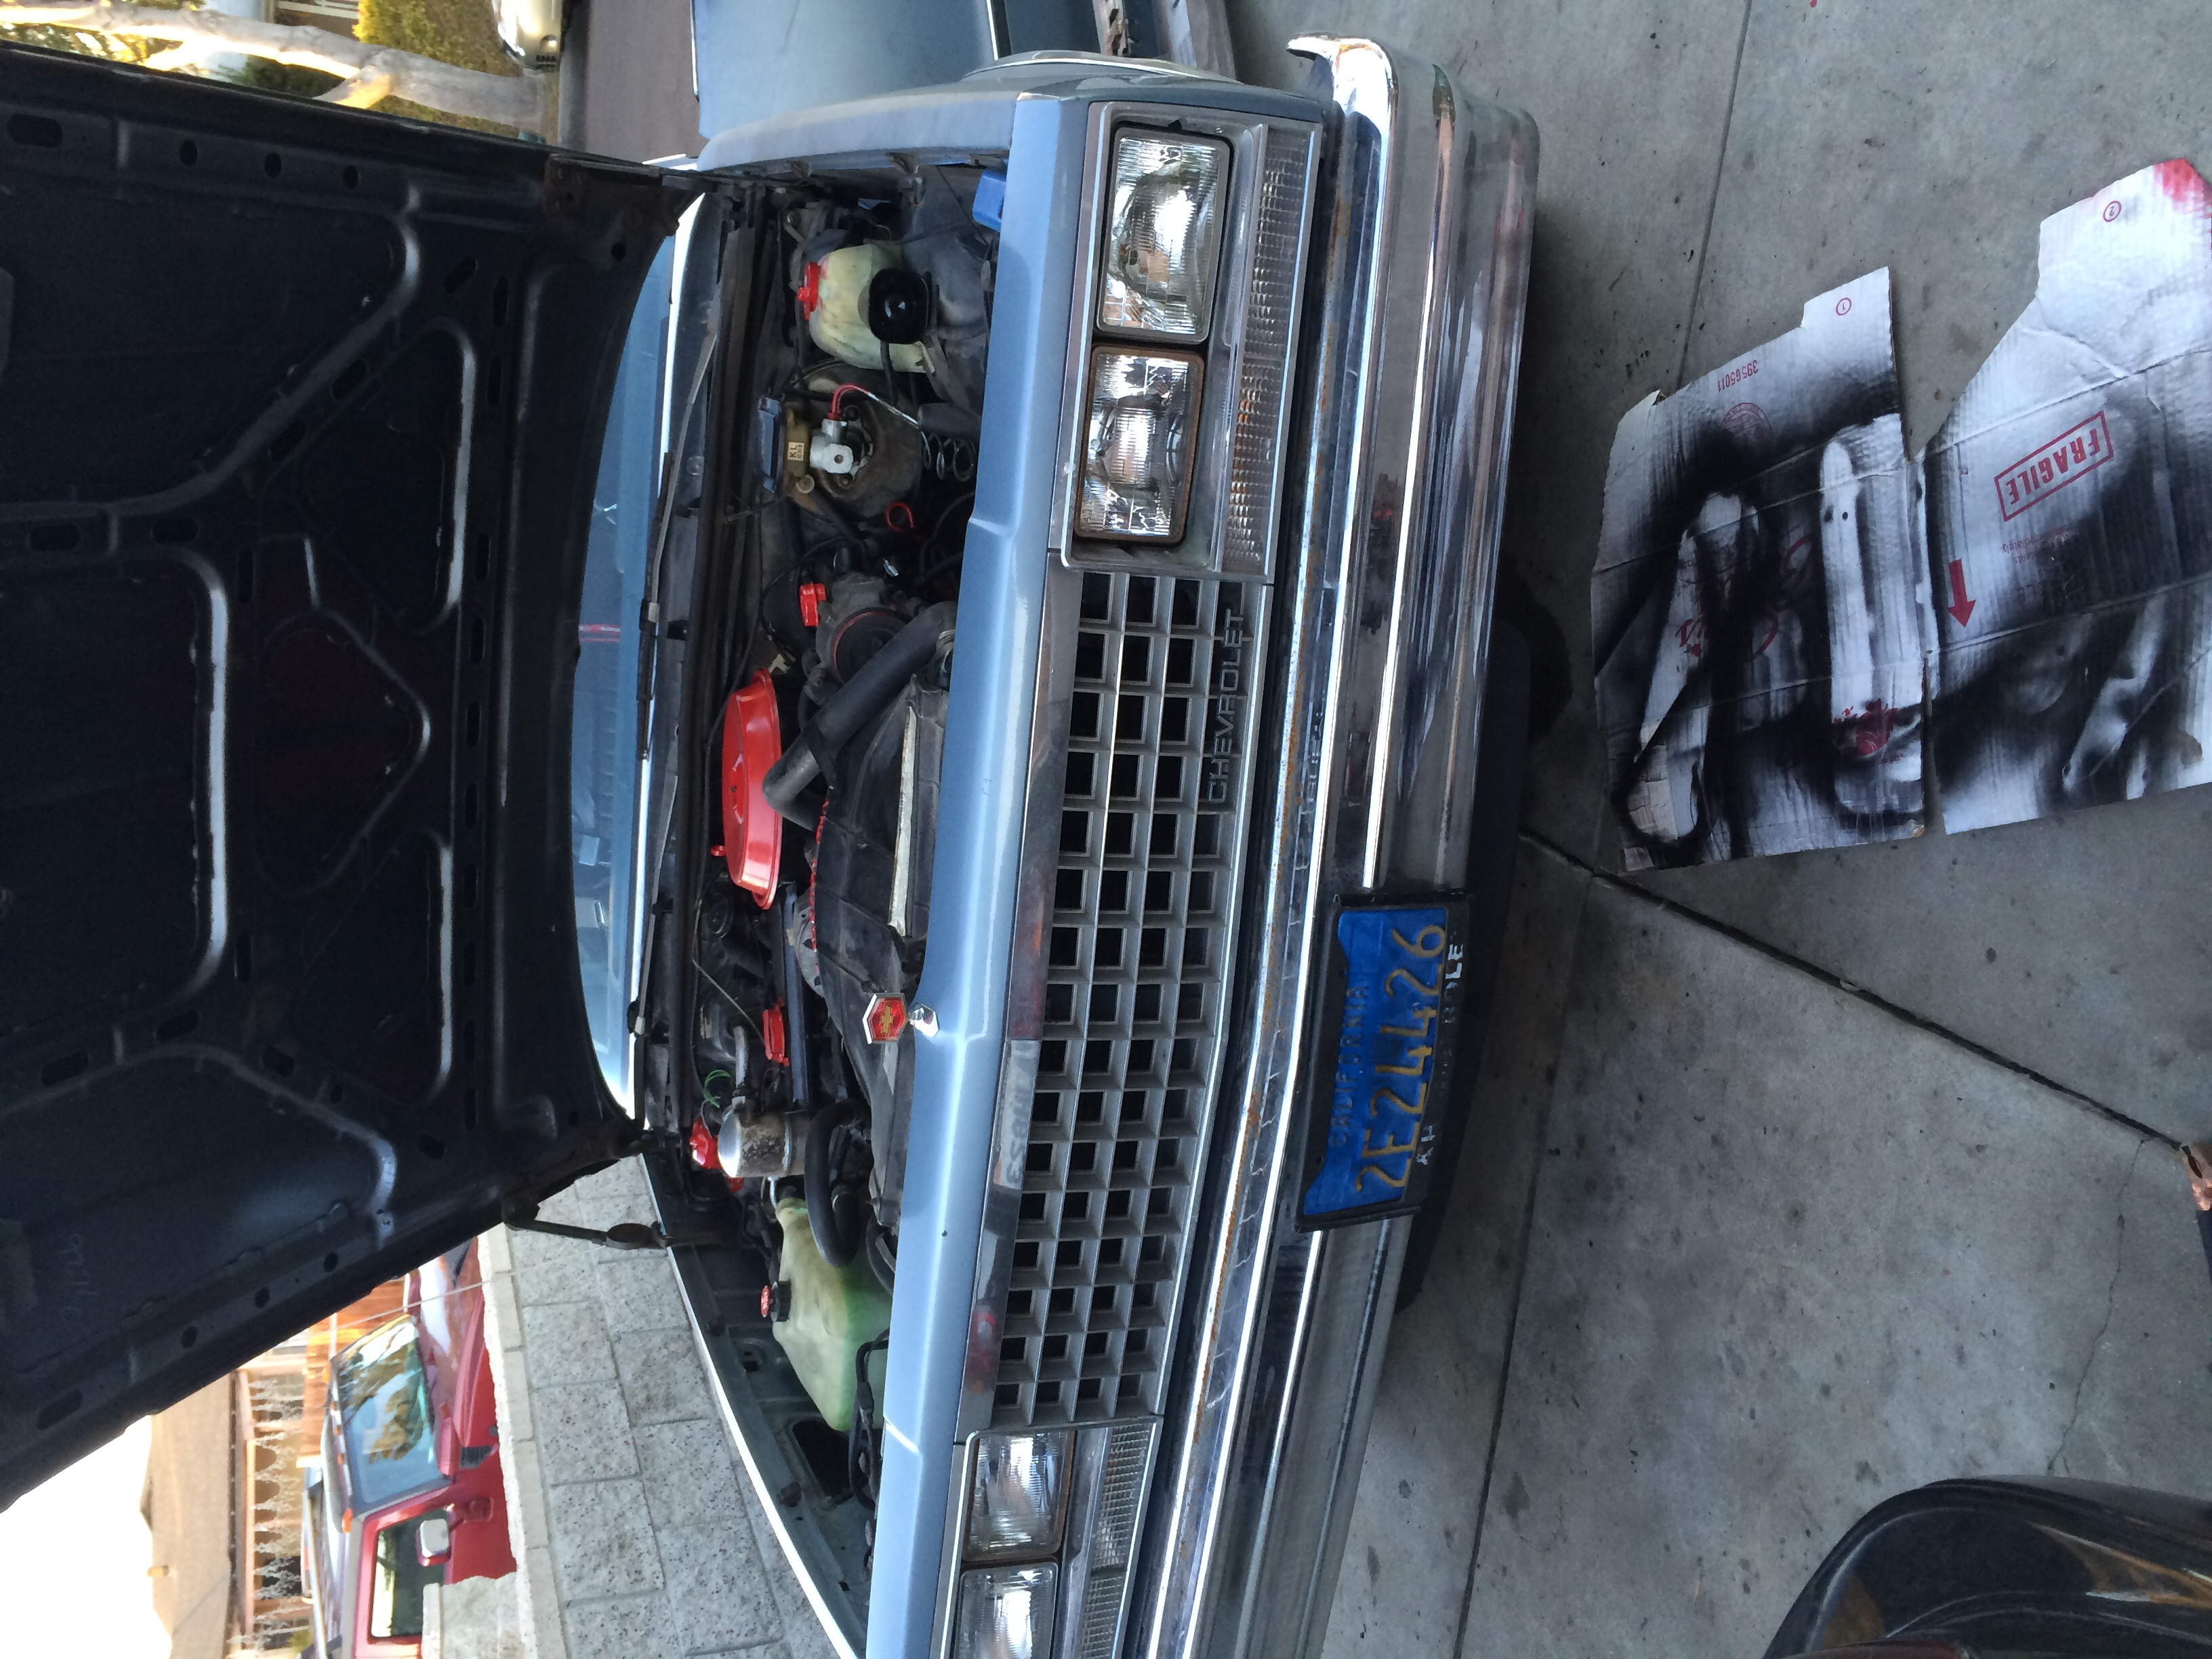 Working in my 83 el camino with a stock v6  - 19055148